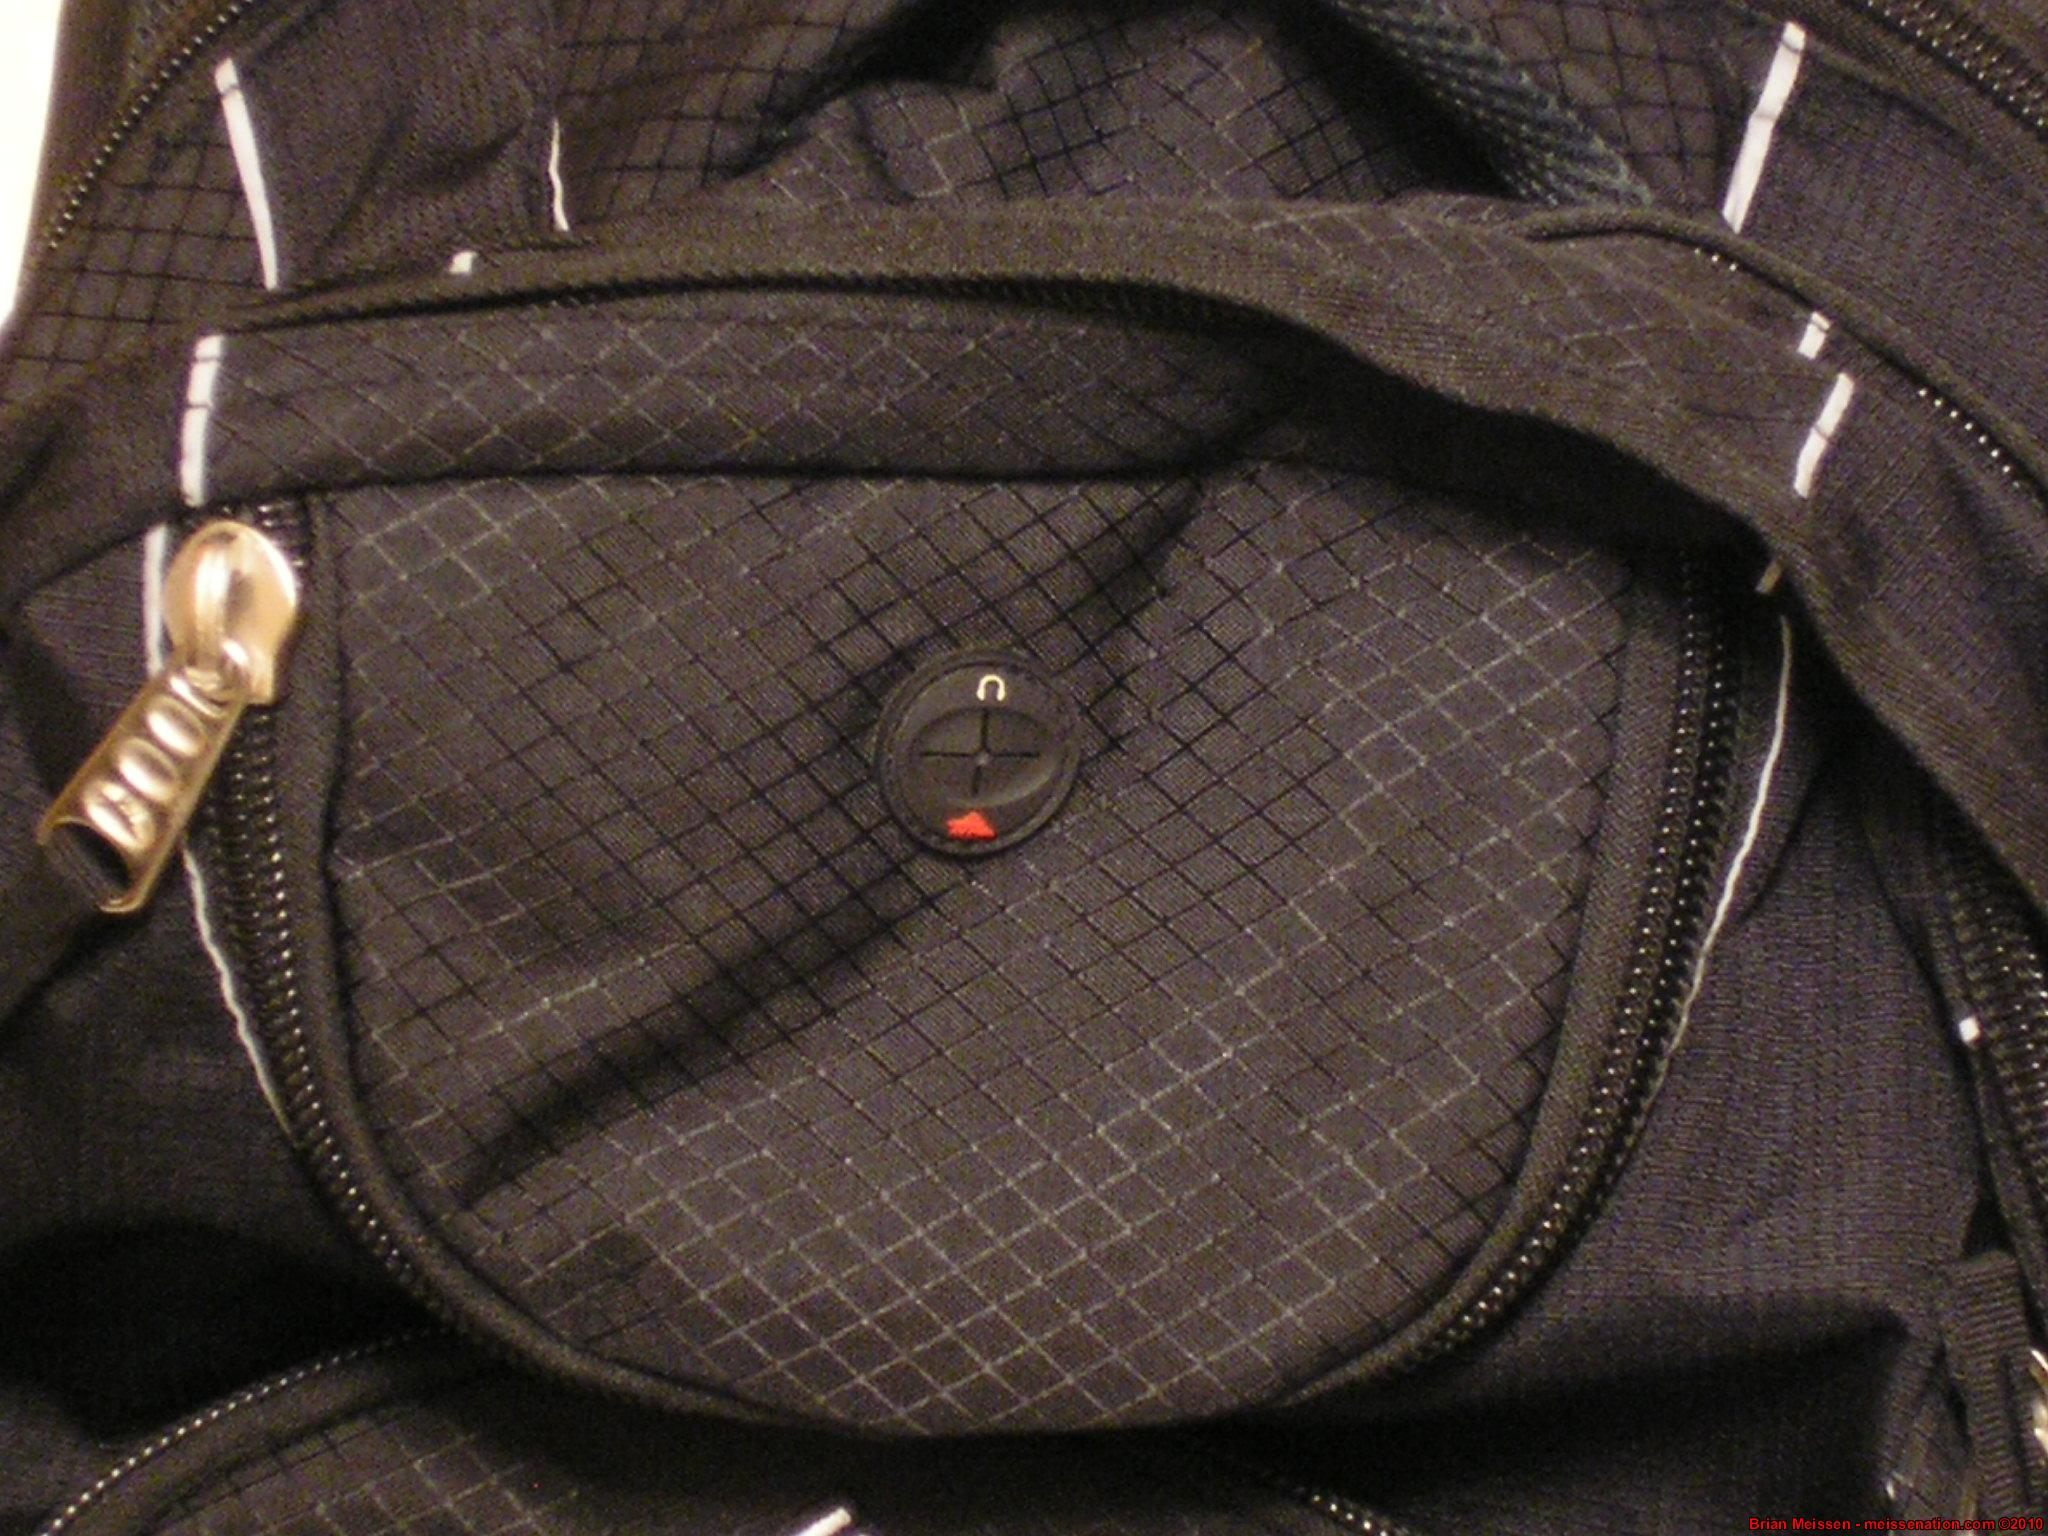 http://meissenation.com/pictures/2006-09-06/backpack%20012.jpg